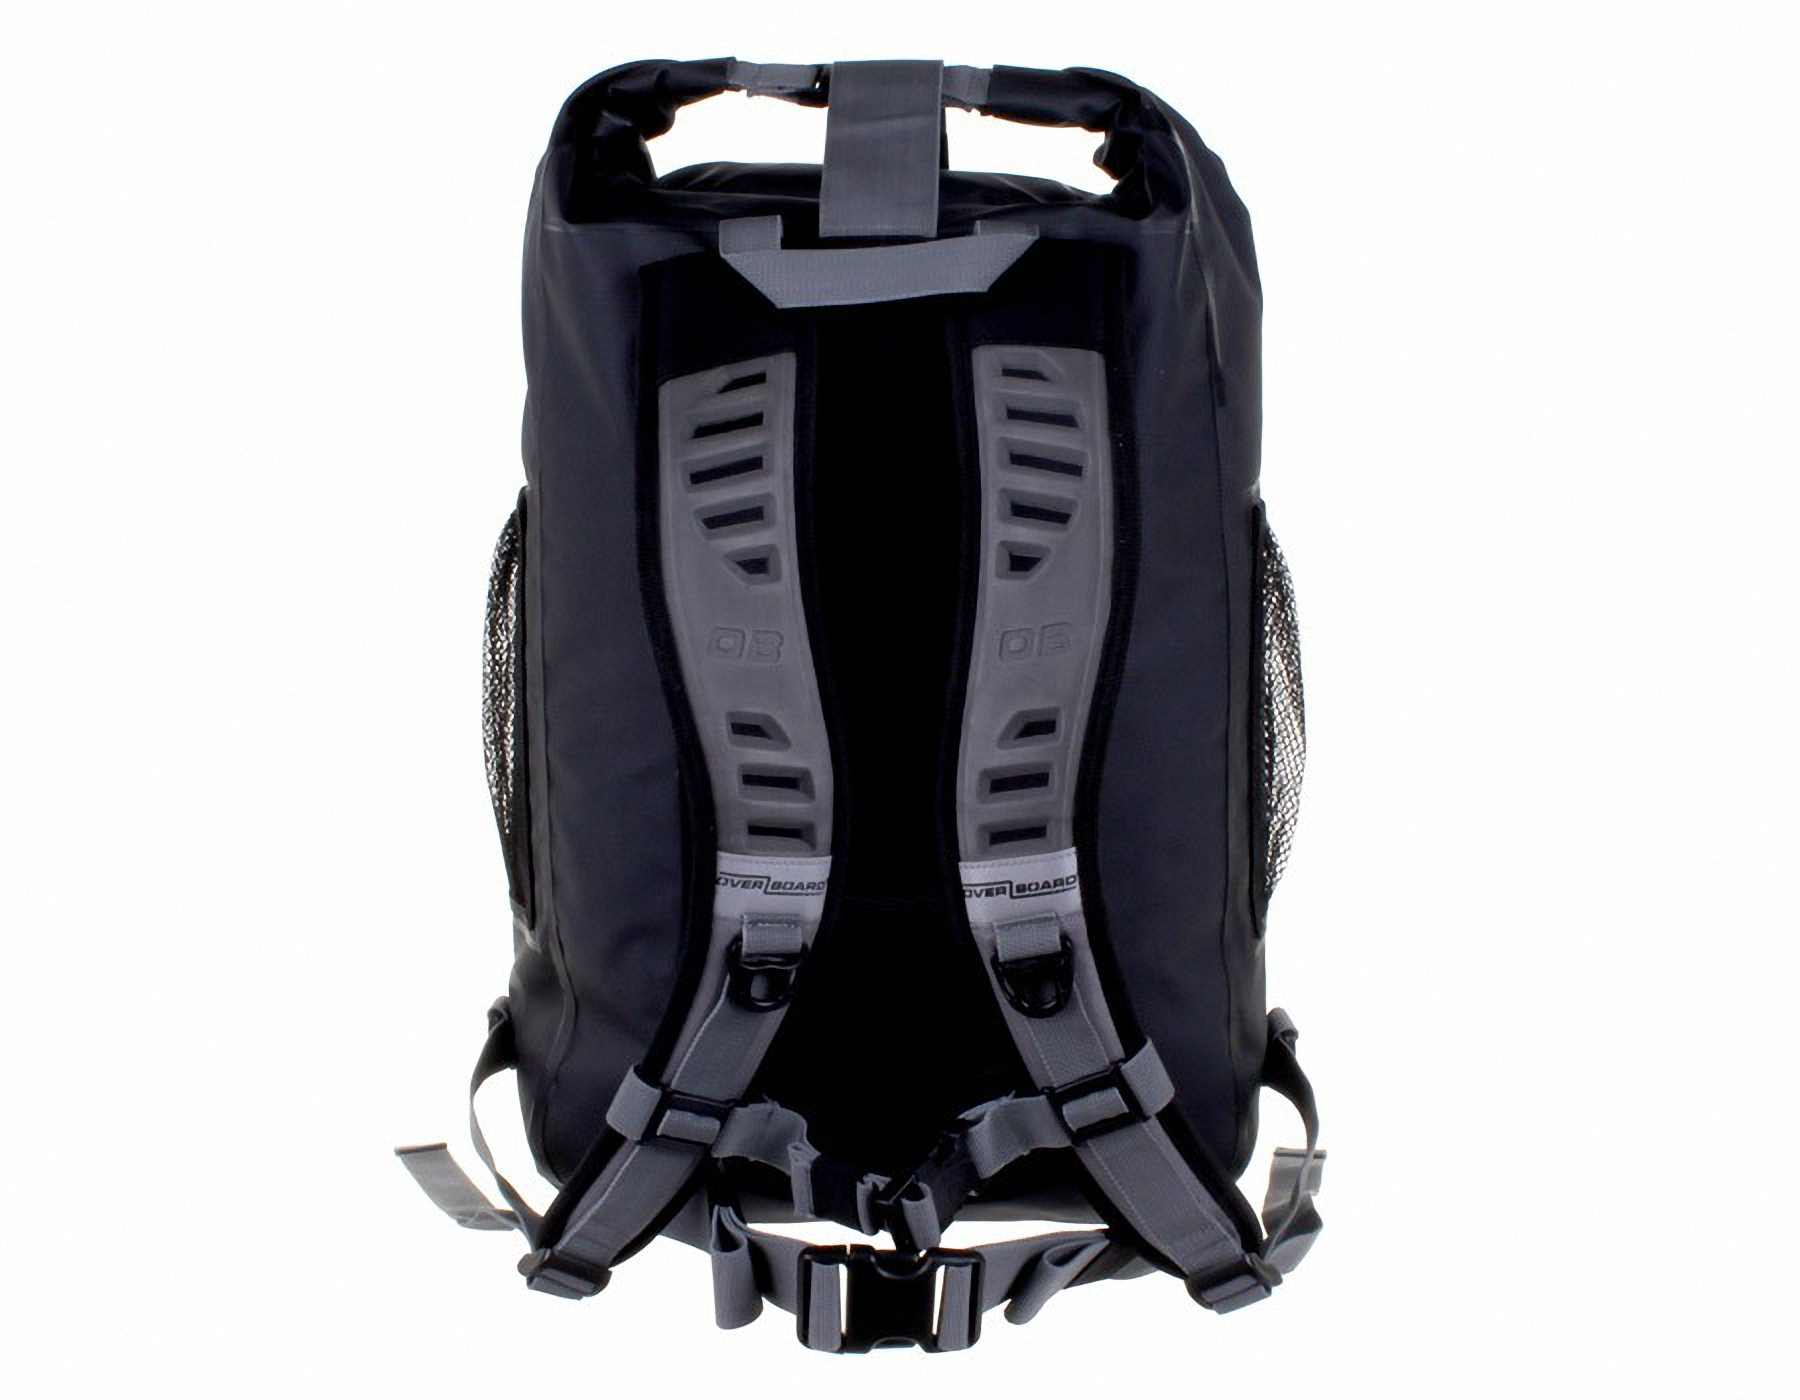 Водонепроницаемый рюкзак OverBoard OB1146BLK - Pro-Sports Waterproof Backpack - 30 литров. Фото 5